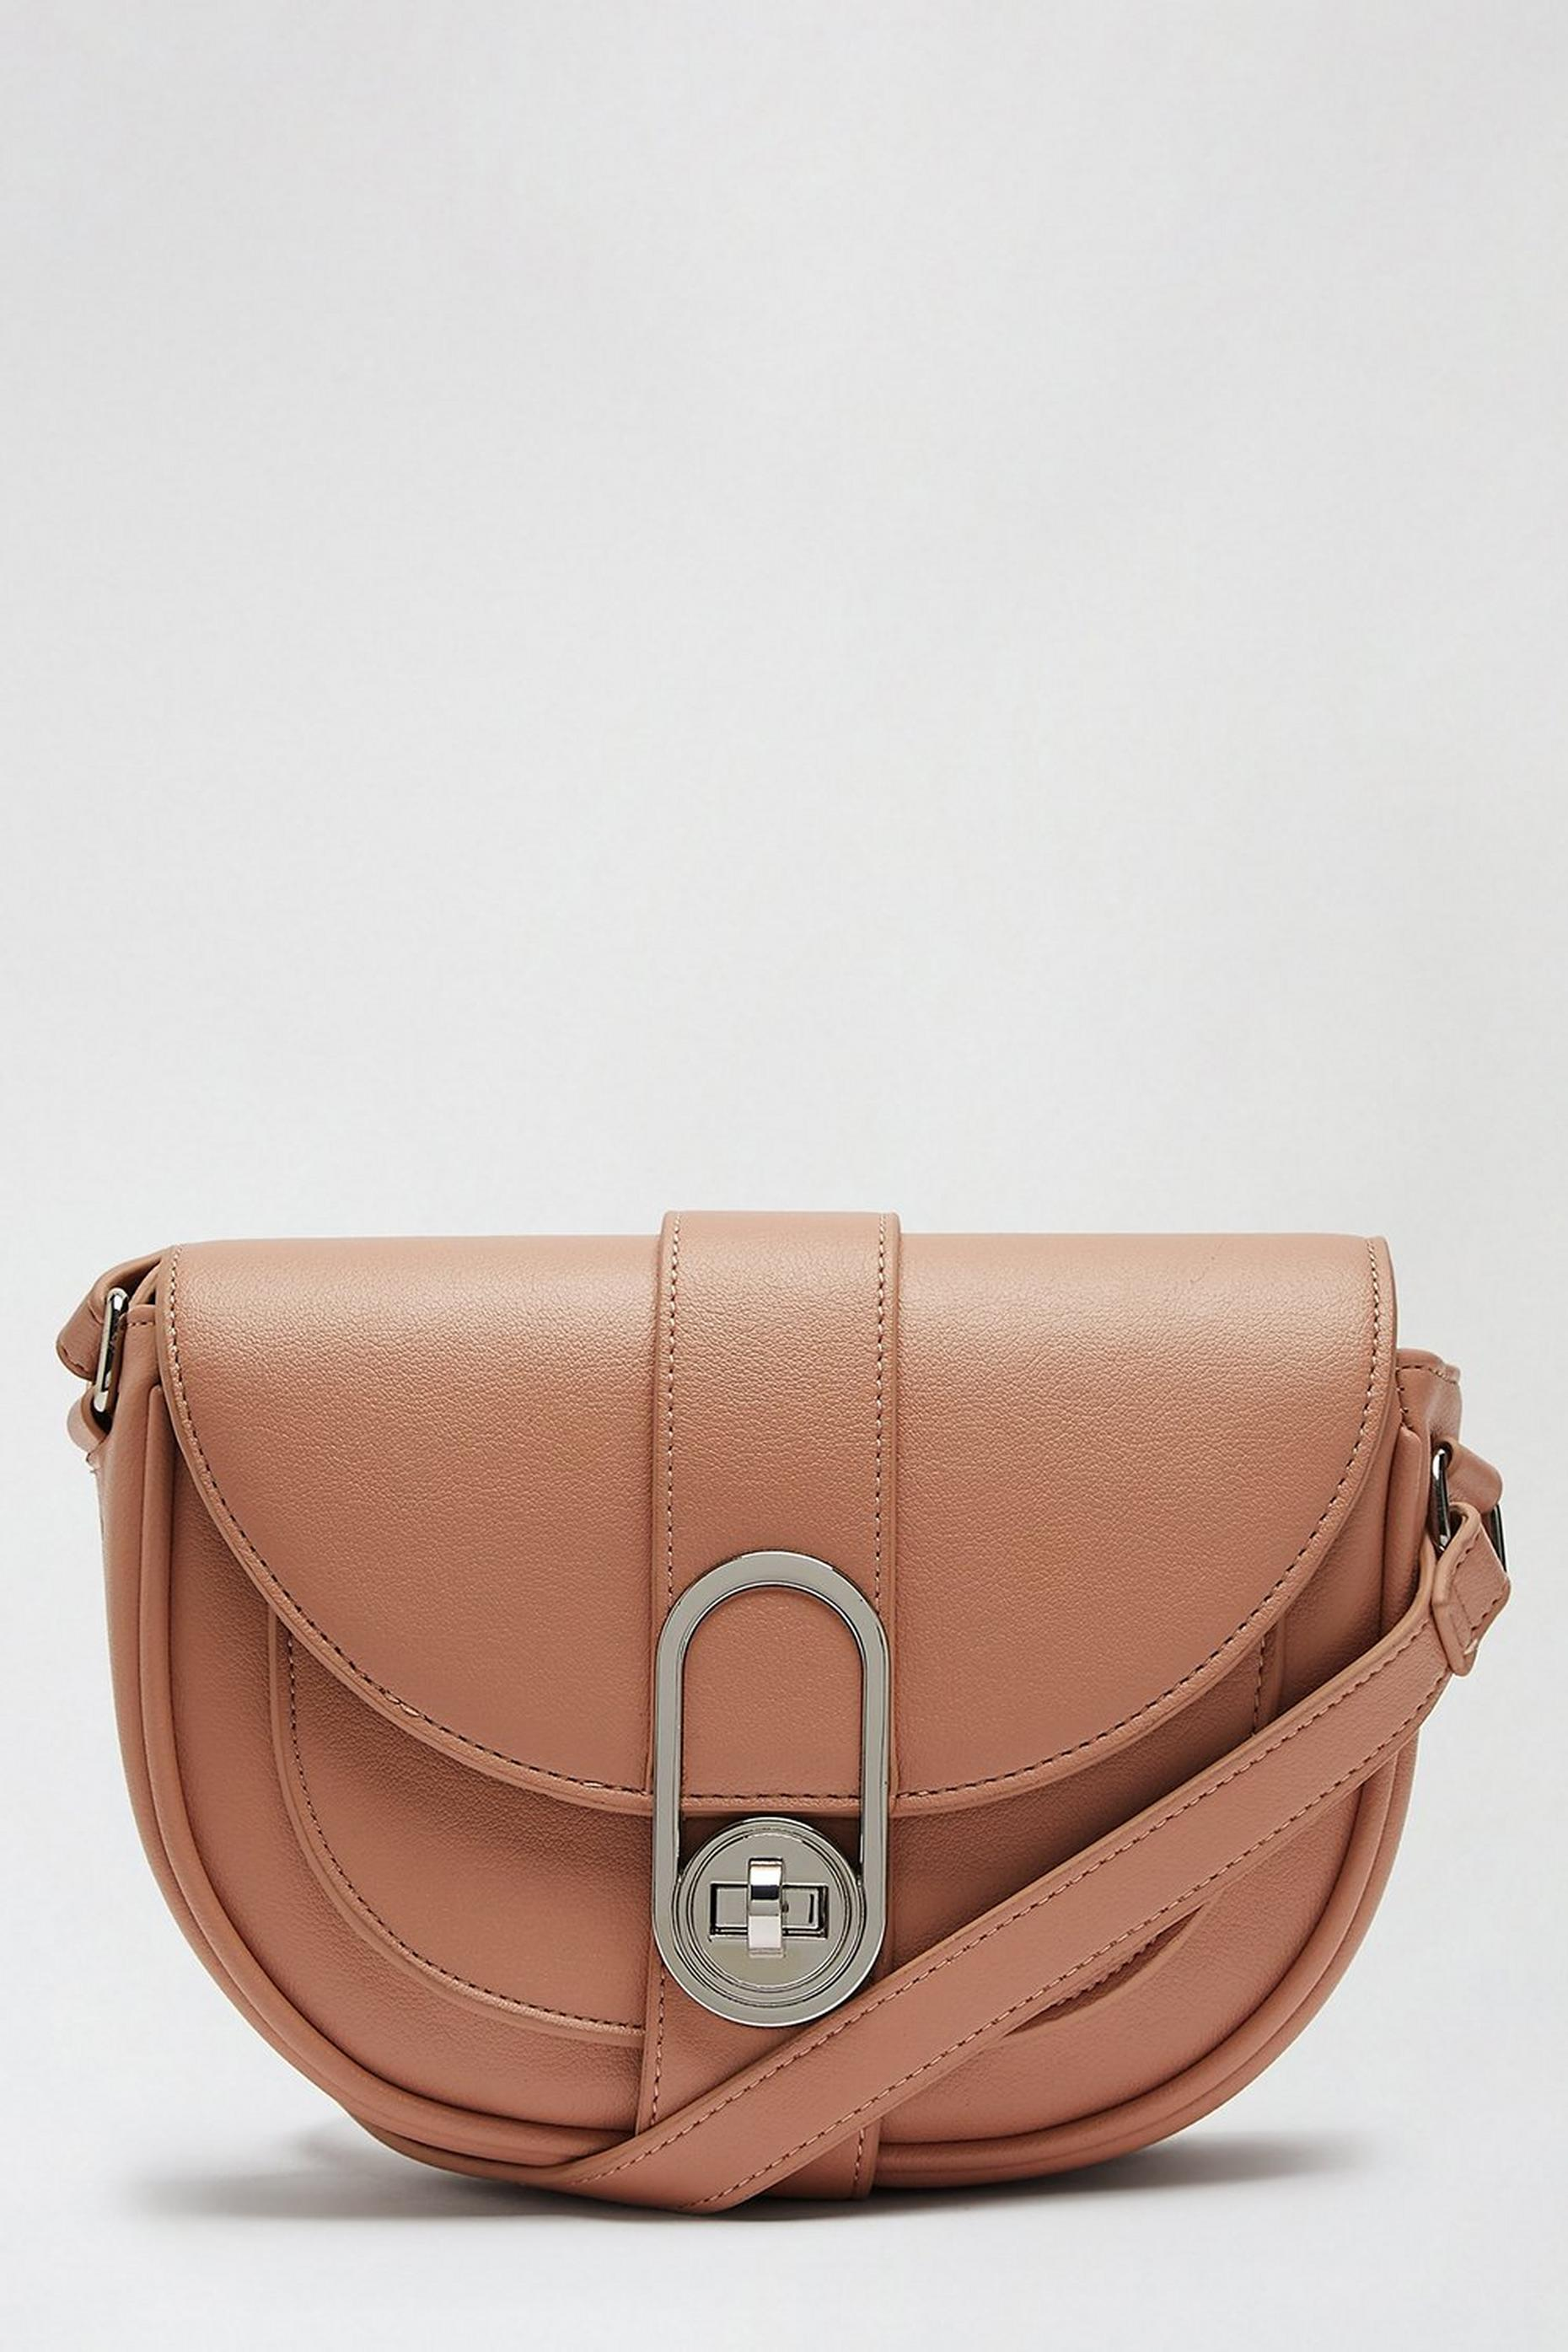 Nude Twistlock Saddle Bag